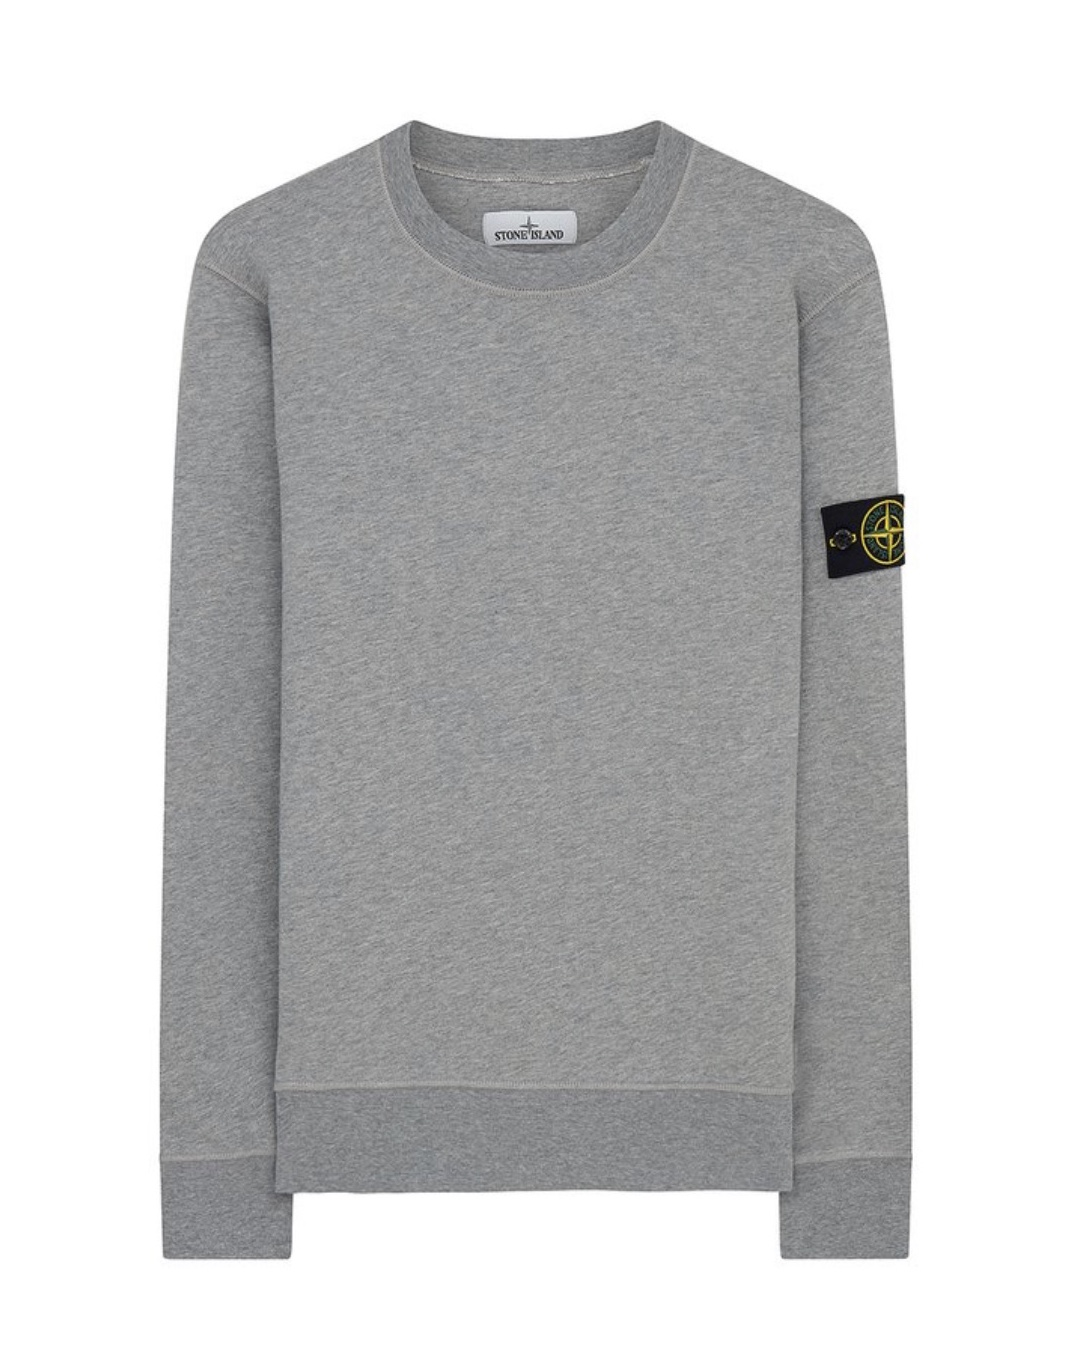 Sweatshirt In Grey